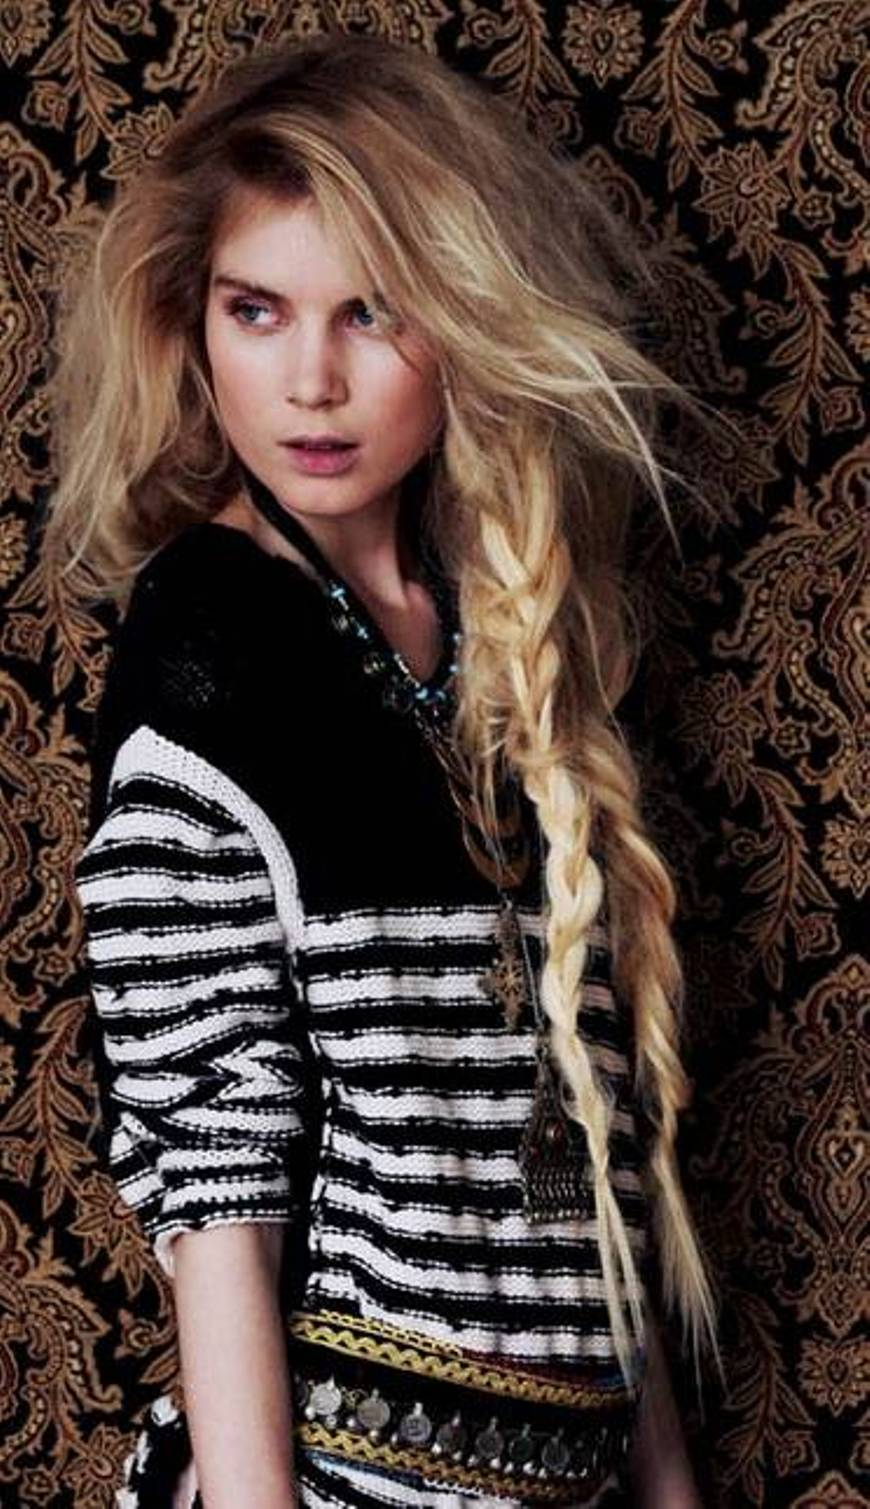 braid-bohemian-hairstyles.jpg